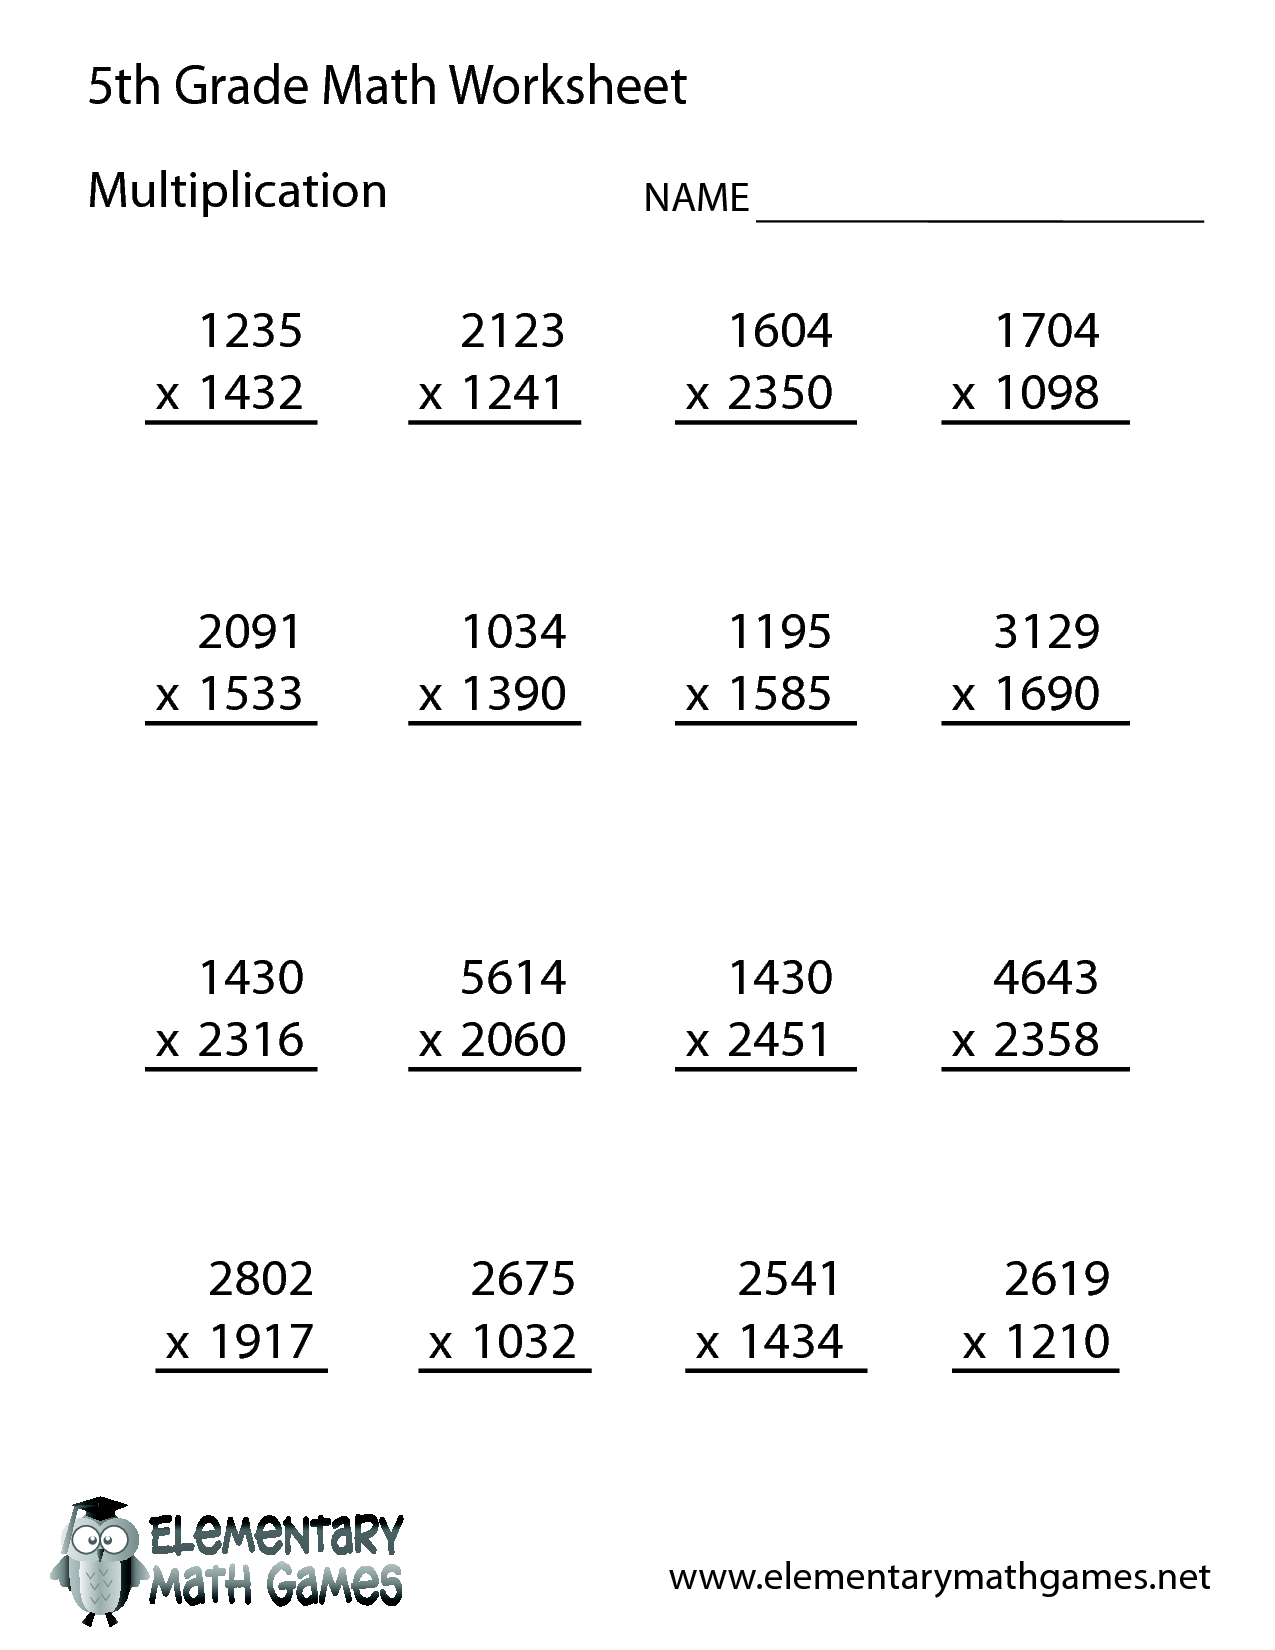 6 7 8 and 9 times tables multiplication math worksheets third – Free Math Worksheets for Grade 7